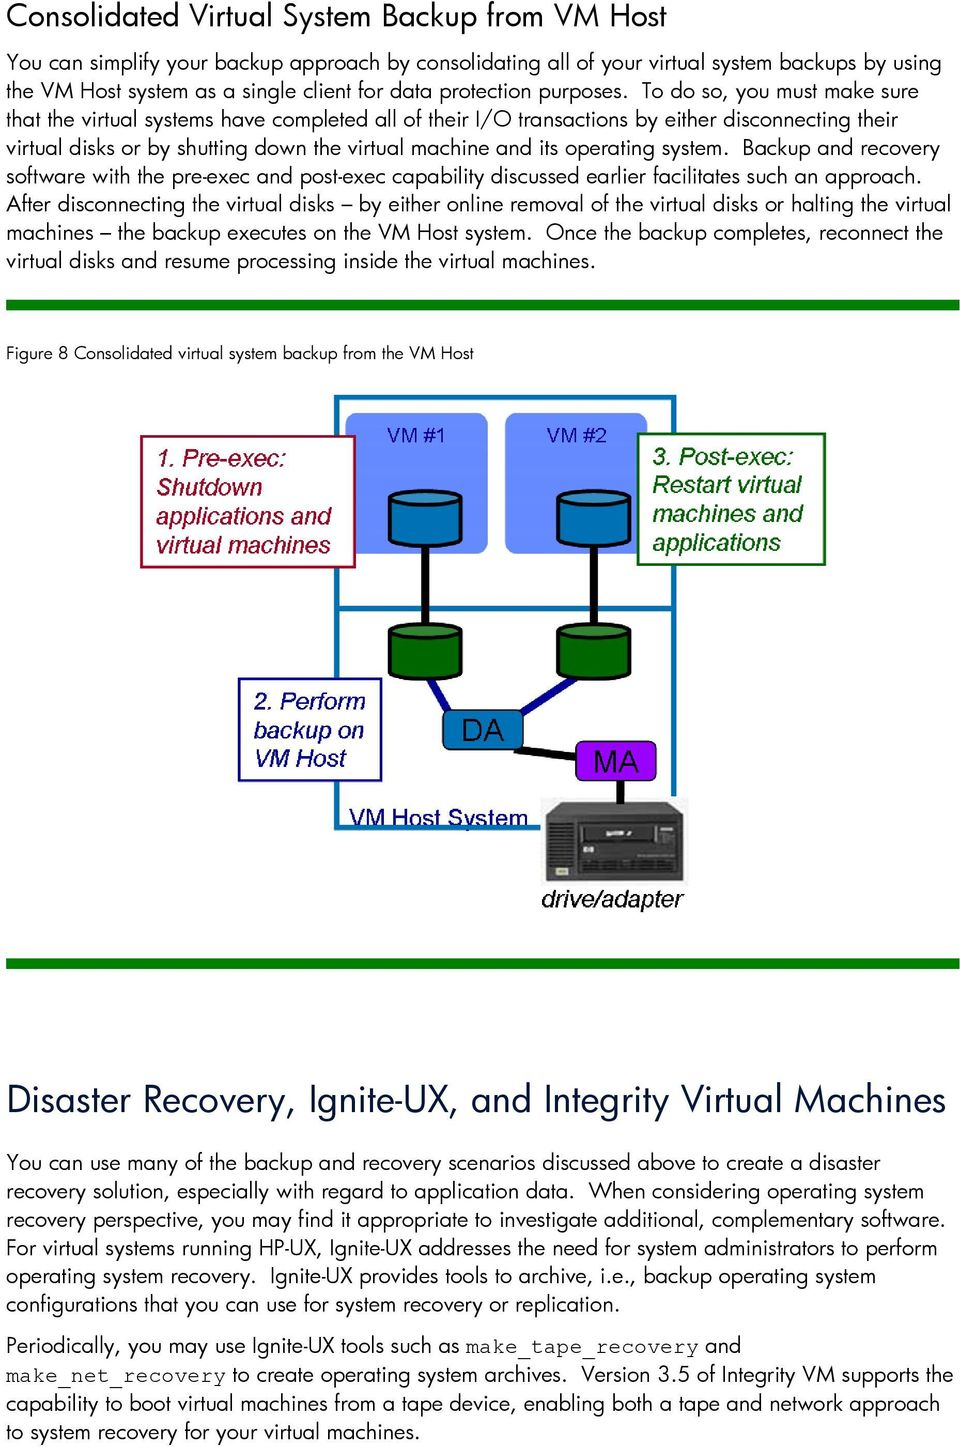 To do so, you must make sure that the virtual systems have completed all of their I/O transactions by either disconnecting their virtual disks or by shutting down the virtual machine and its